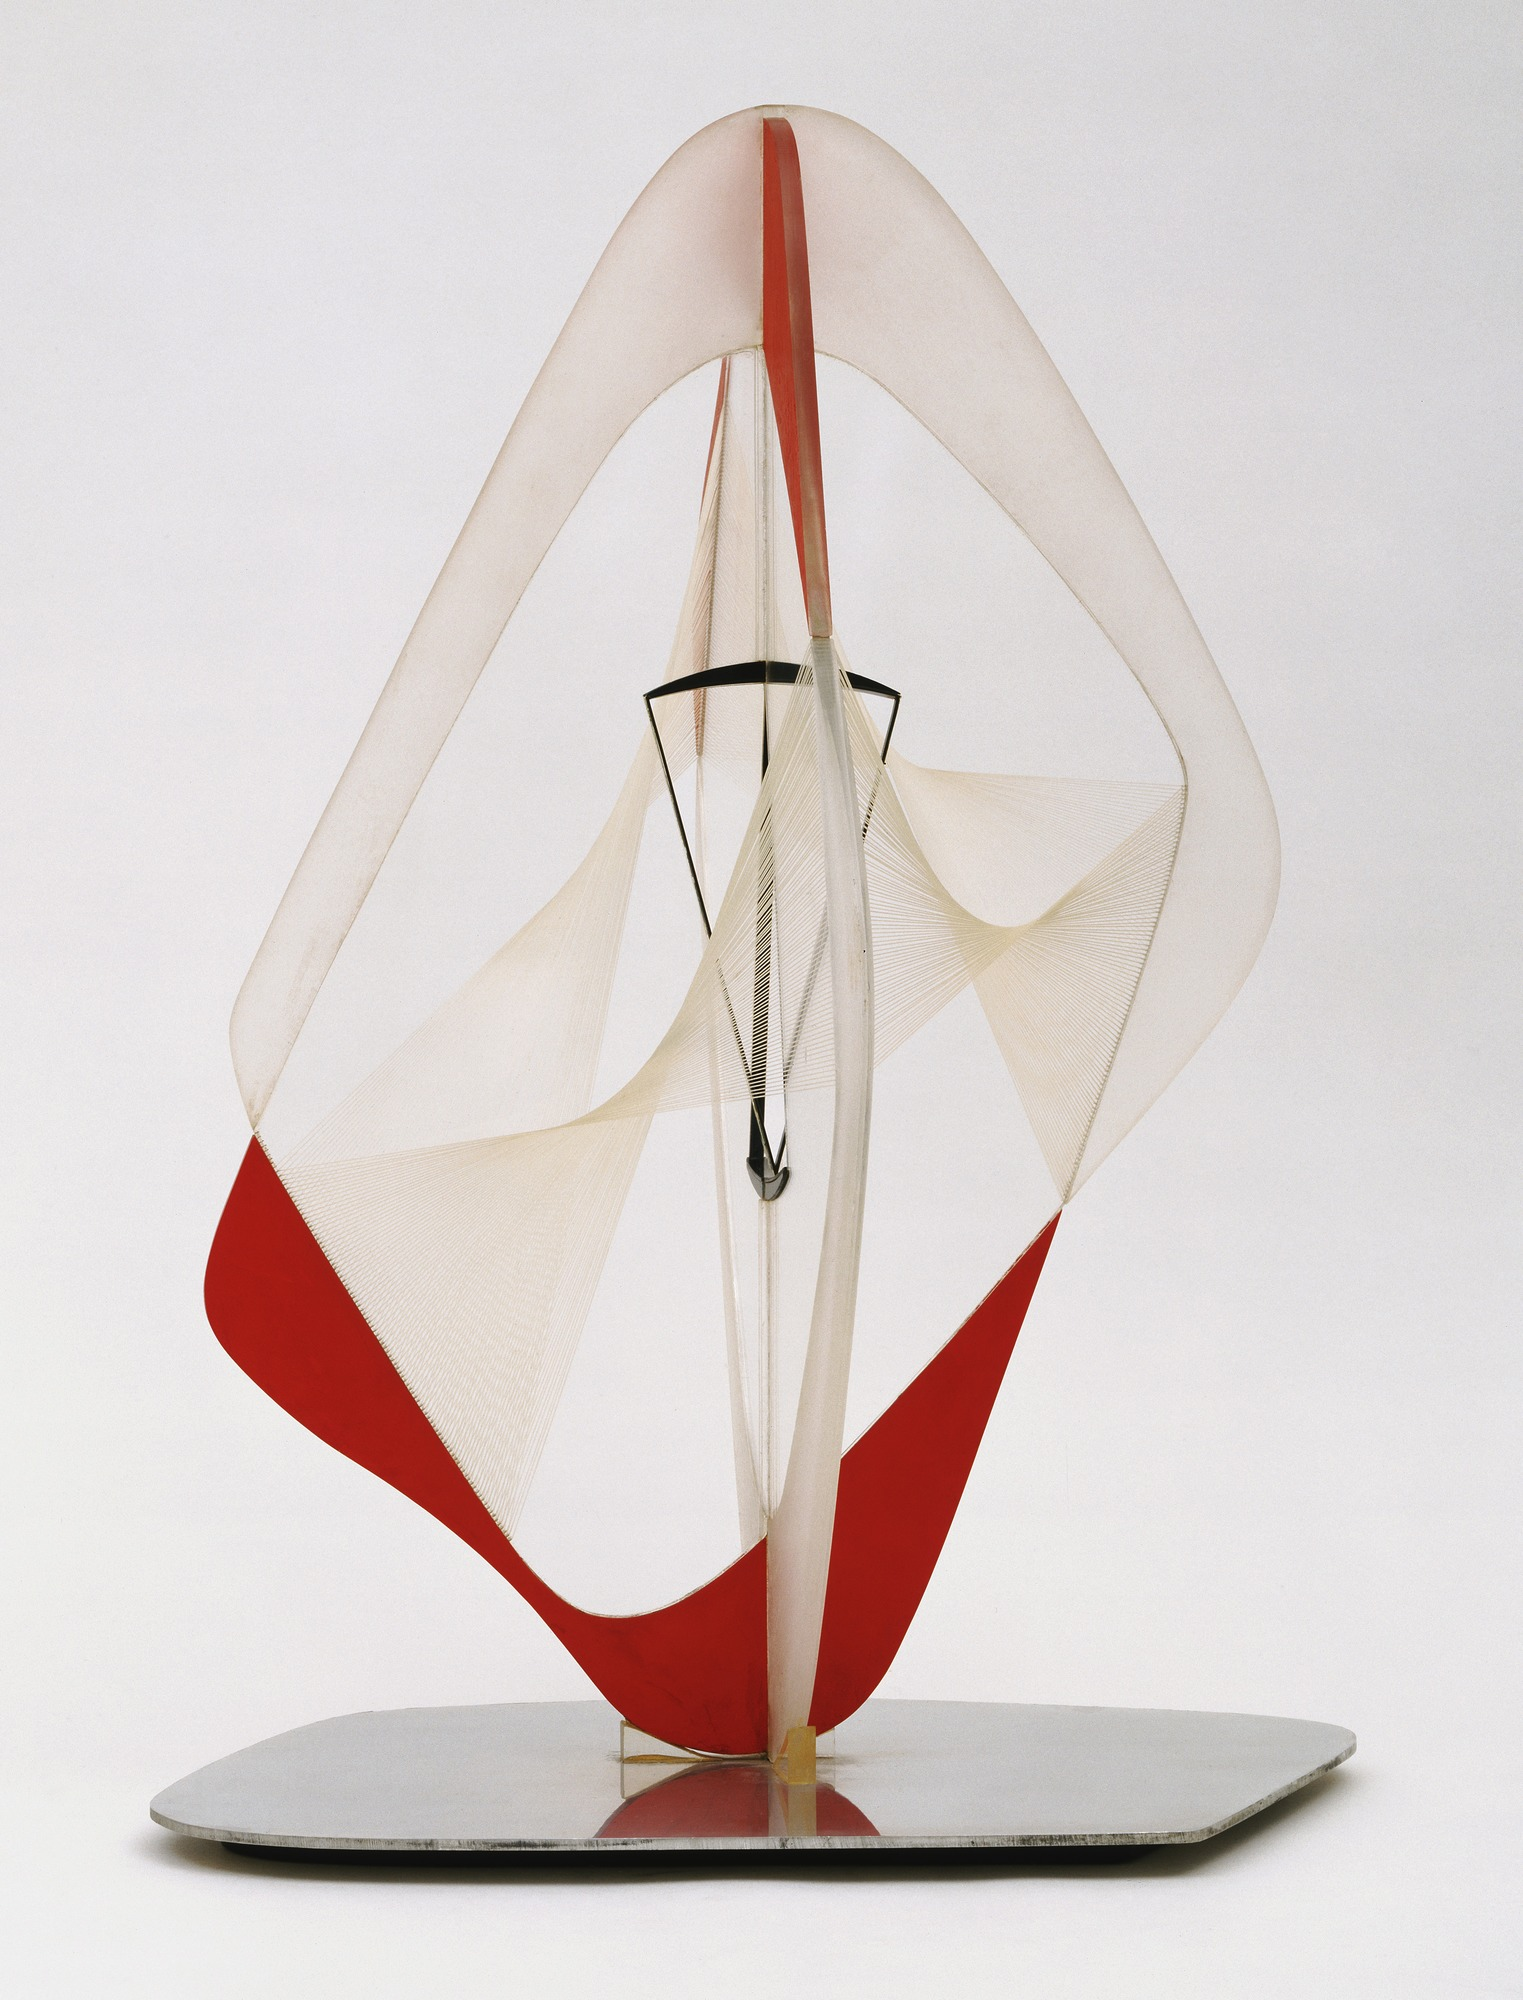 Linear Construction in Space no. 3, with Red, 1953 — Naum Gabo